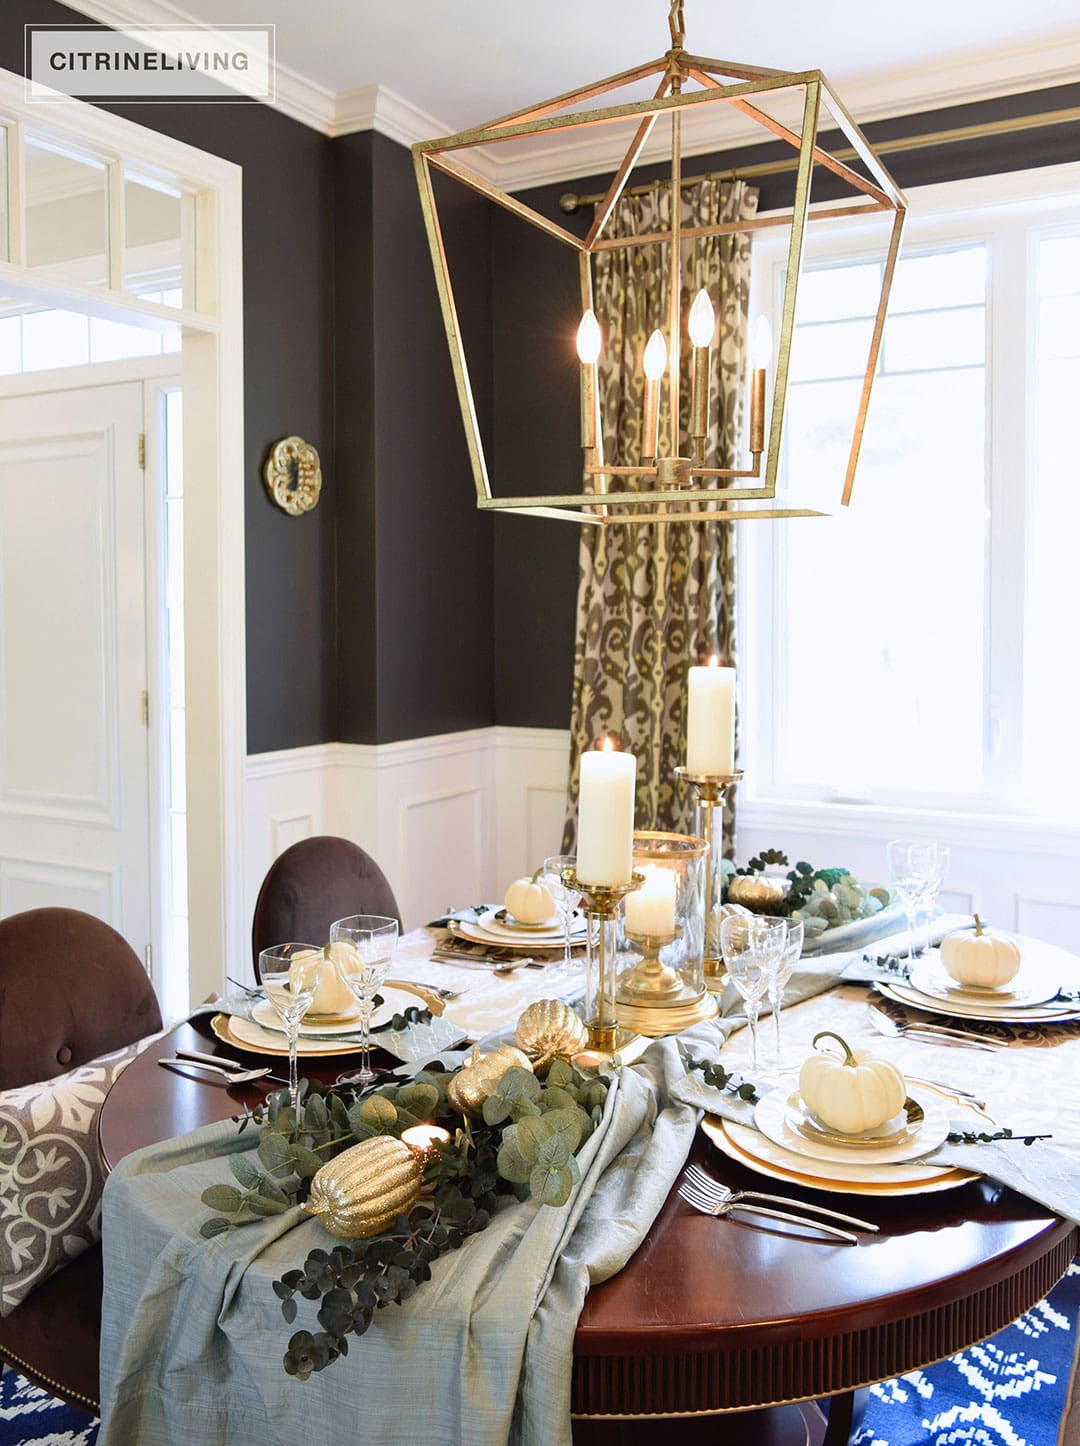 citrineliving-fall-entertaining